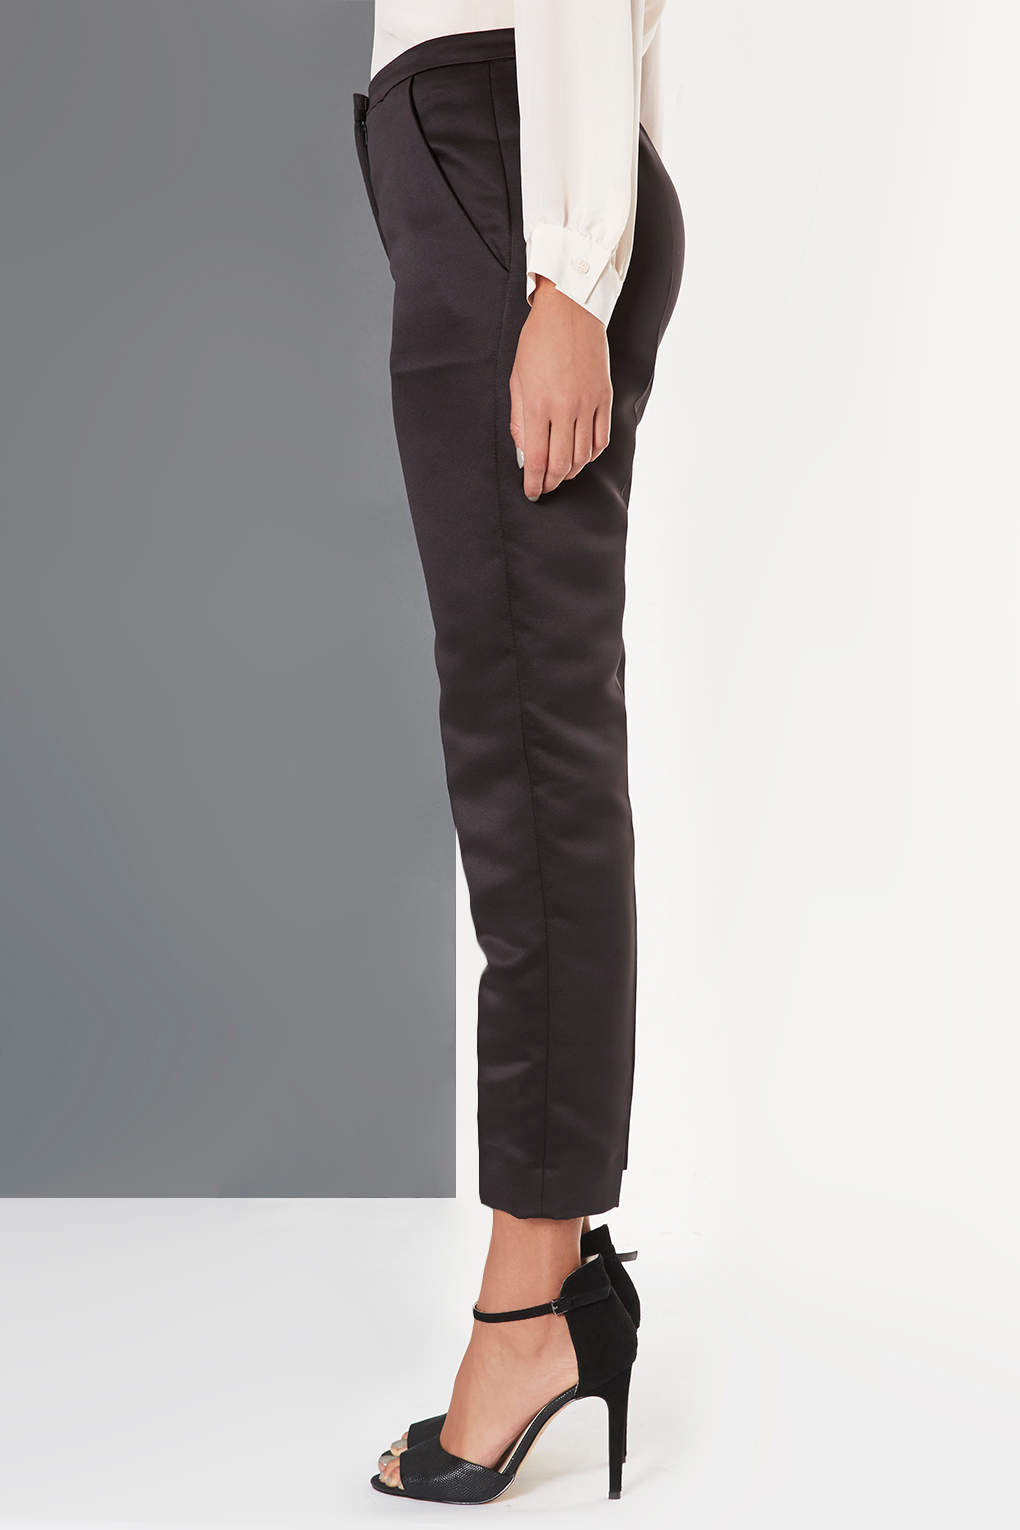 Black Satin Trousers River Island